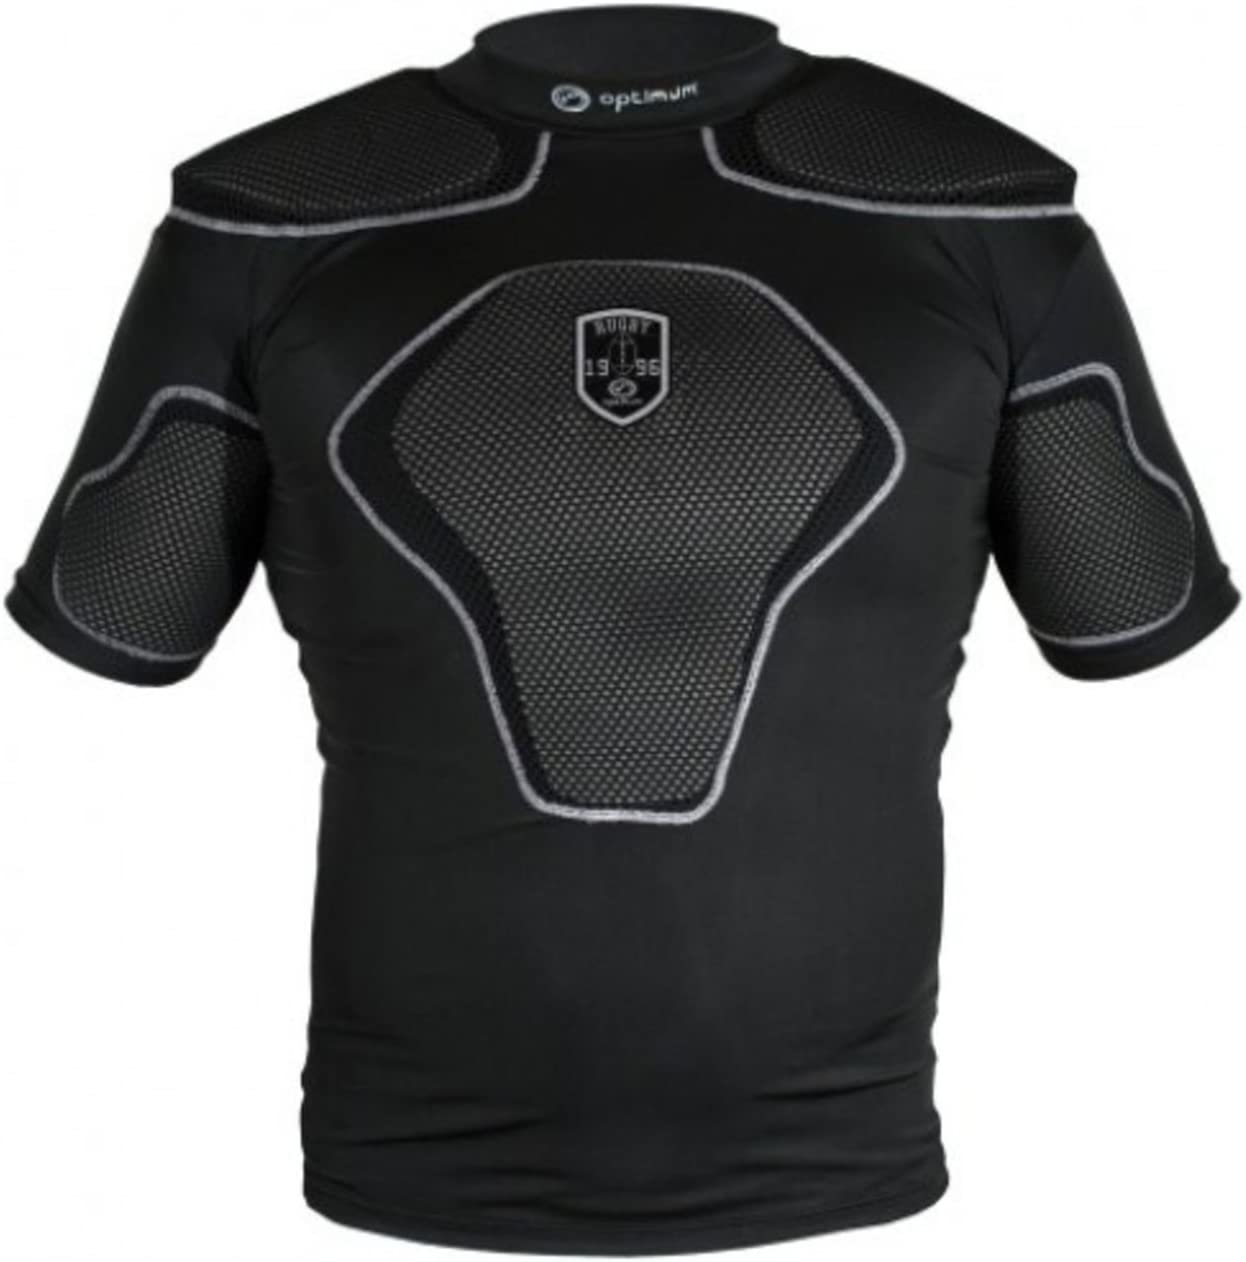 Long-awaited Optimum Rugby Shoulder High quality Body Armour Pad